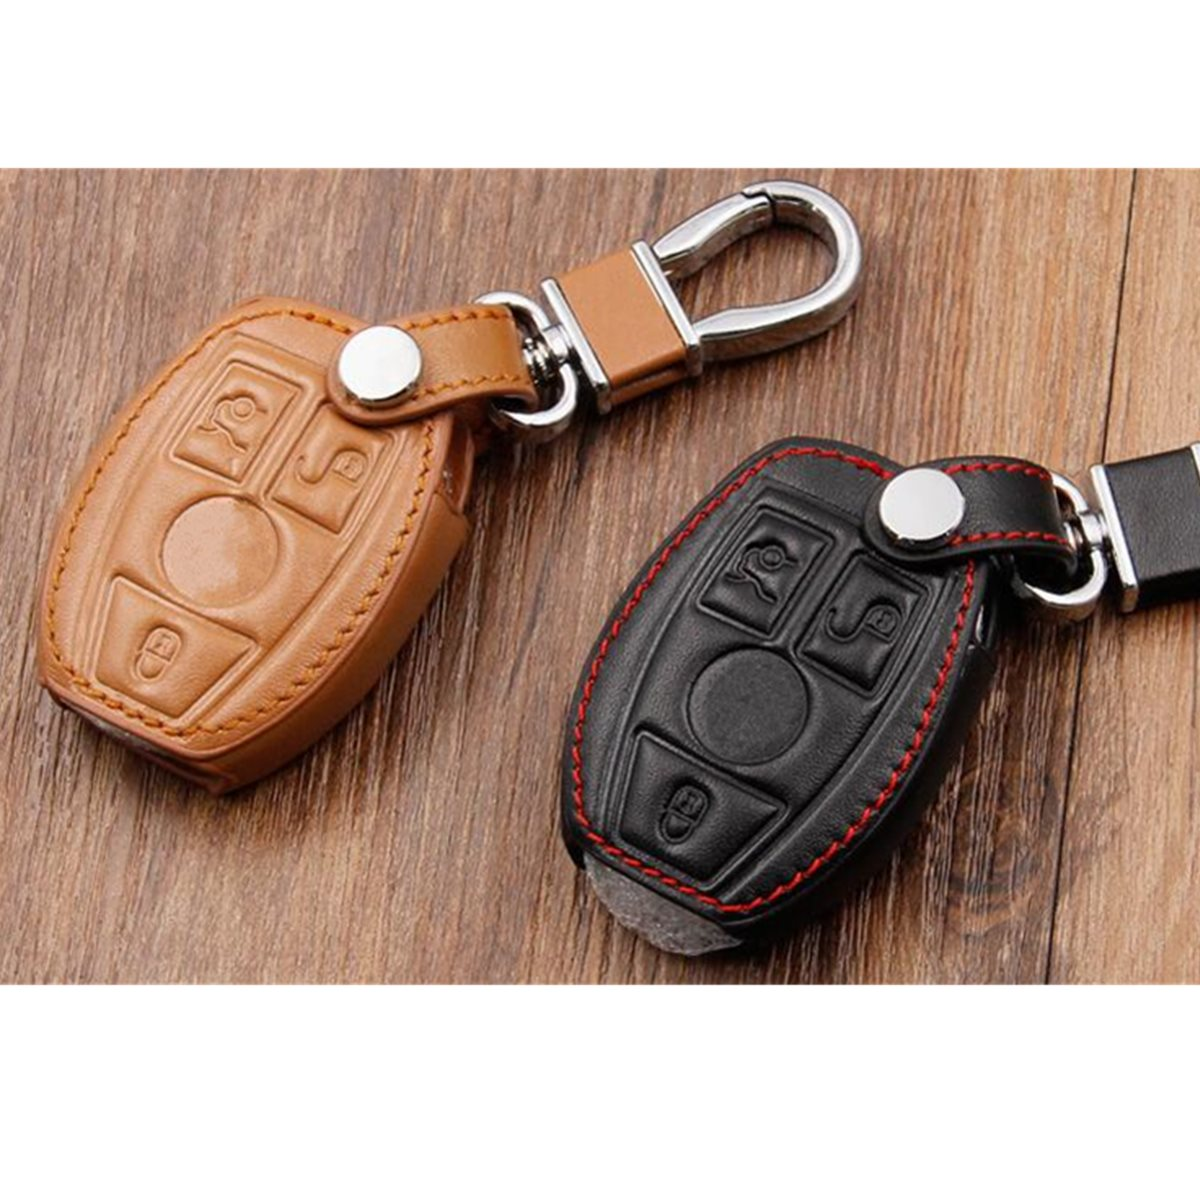 Leather Key Cover Case Holder For Mercedes-Benz Remote Smart Key 3 4 Button C E S G Black/Brown